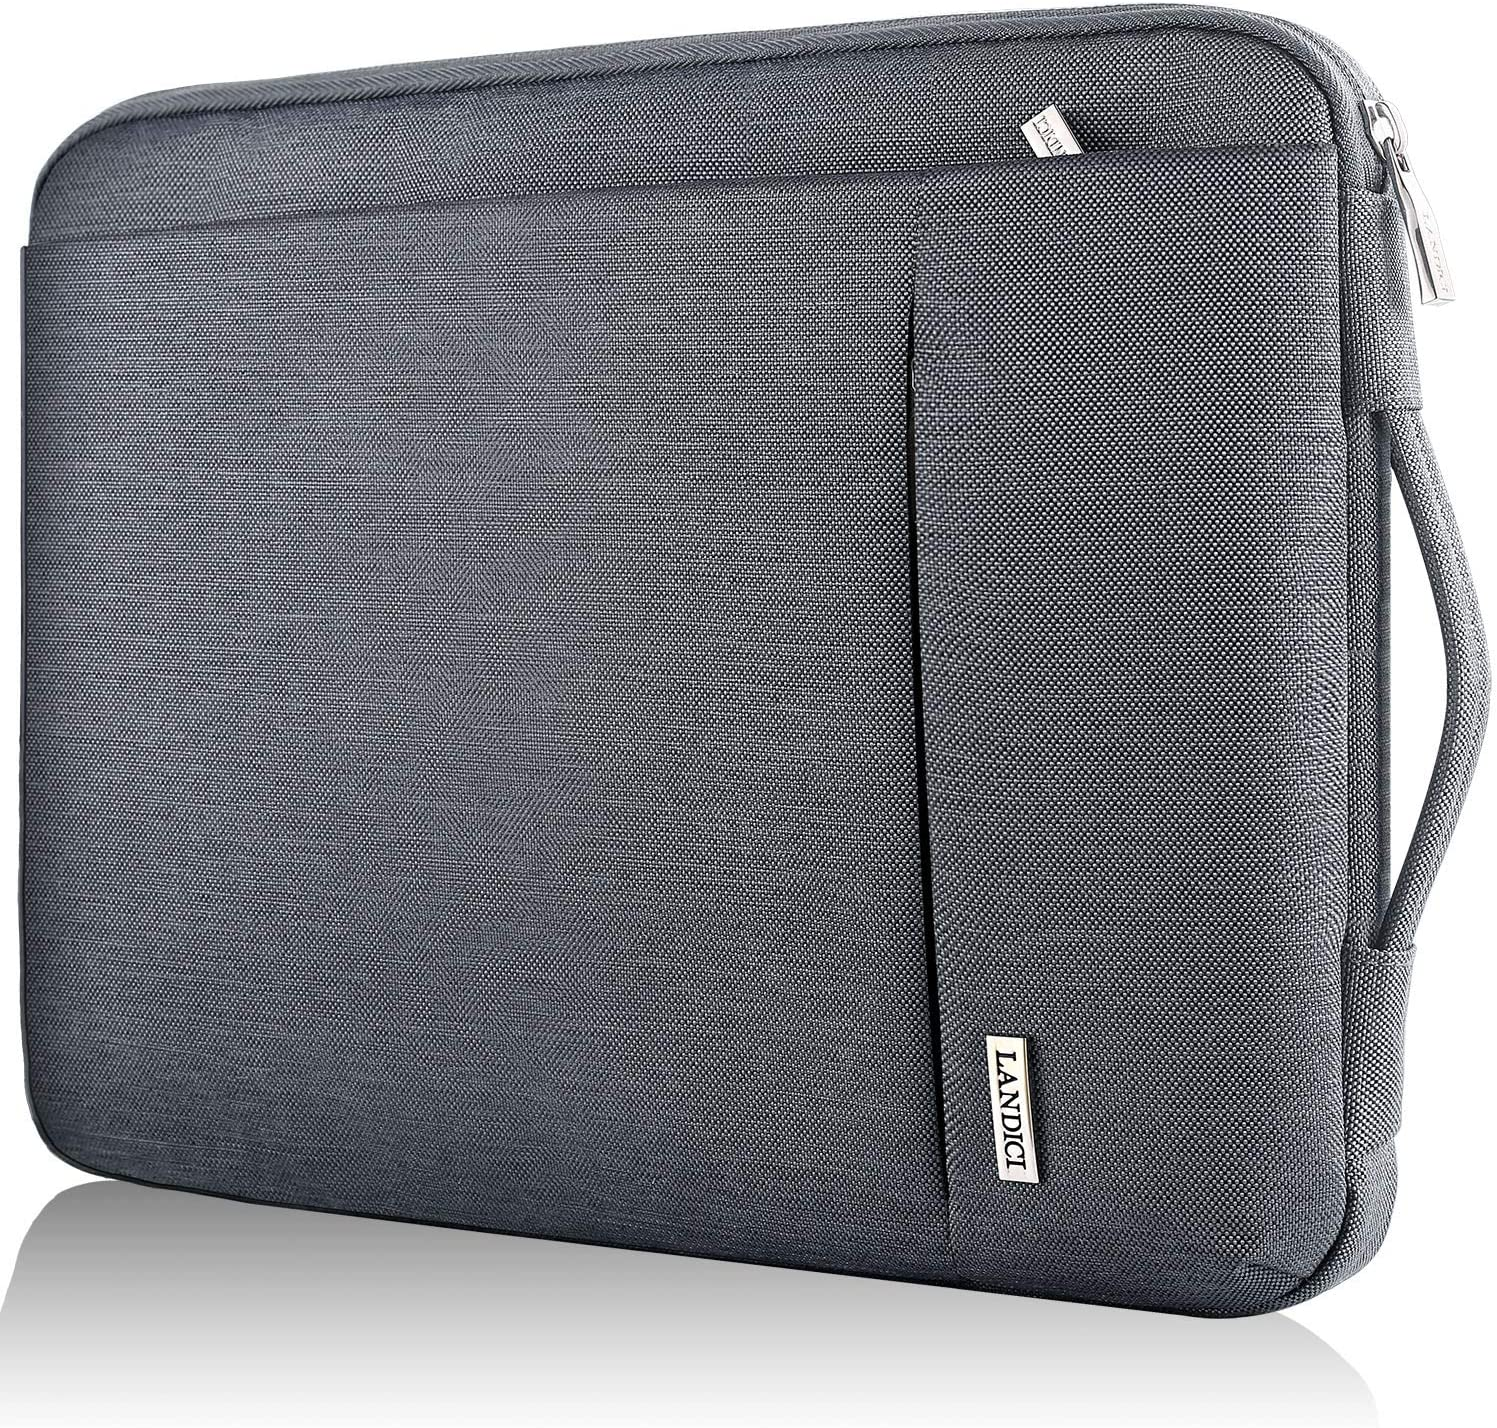 "Landici 360 Protective Laptop Sleeve 11.6 Inch,Waterproof Notebook Tablet Case Bag Compatible for IPad Pro 12.9 2020,12.3"",Surface Pro 7/6/5,MacBook Air 11,New MacBook 12"",HP Acer Chromebook-Gray"